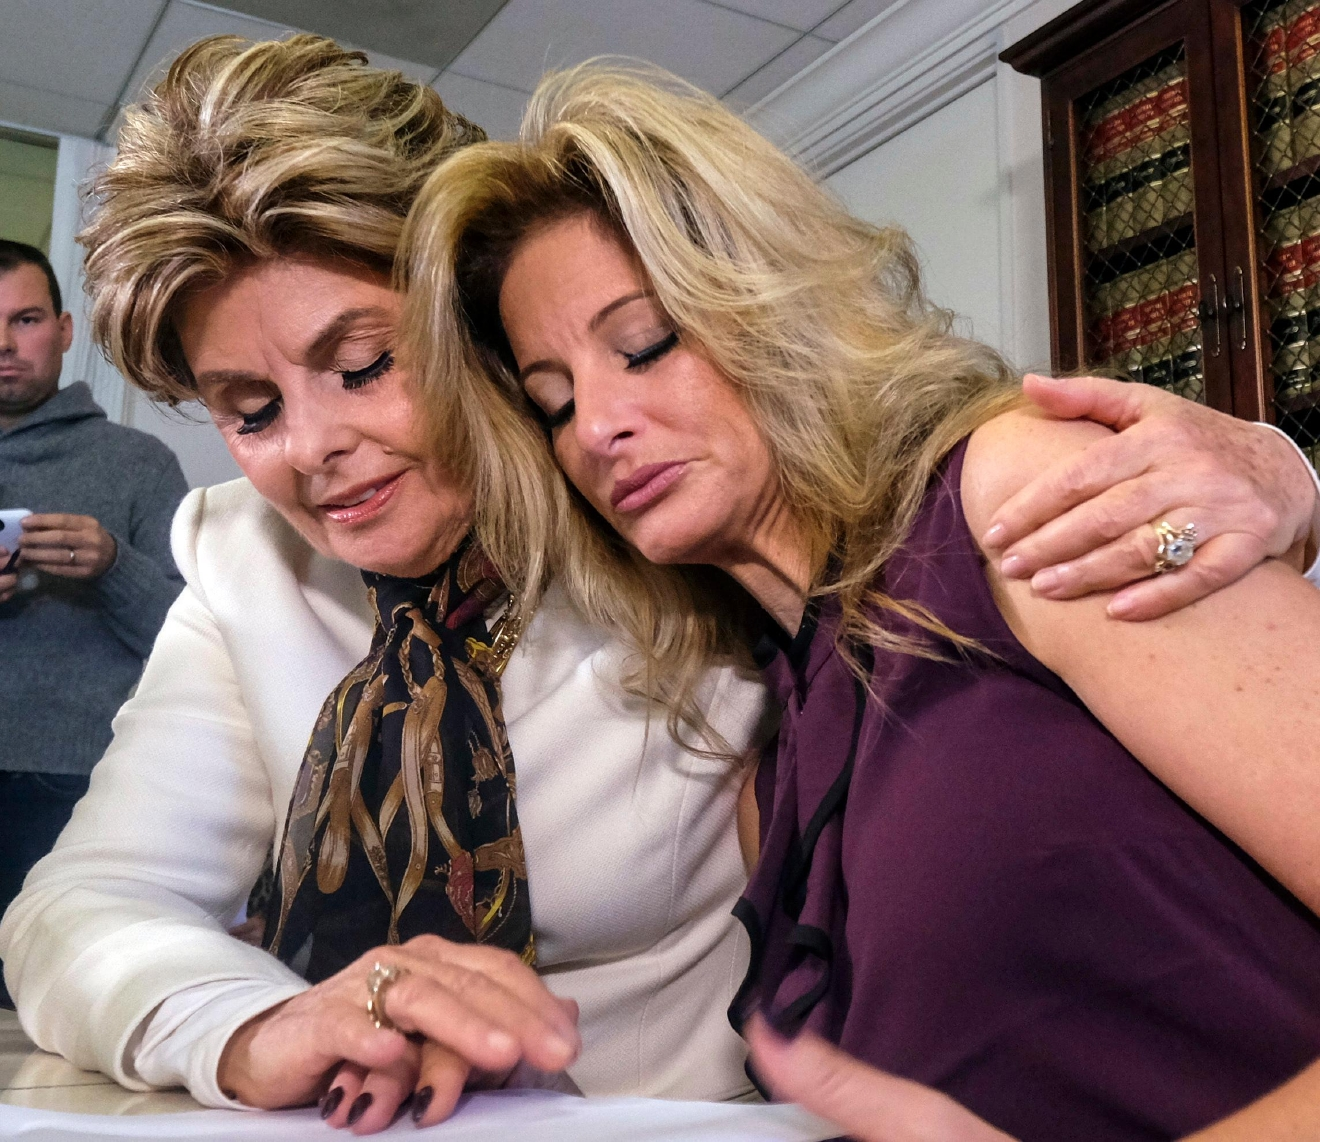 Attorney Gloria Allred, left, comforts Summer Zervos during a news conference in Los Angeles, Friday Oct. 14, 2016.  (AP Photo/Ringo H.W. Chiu)